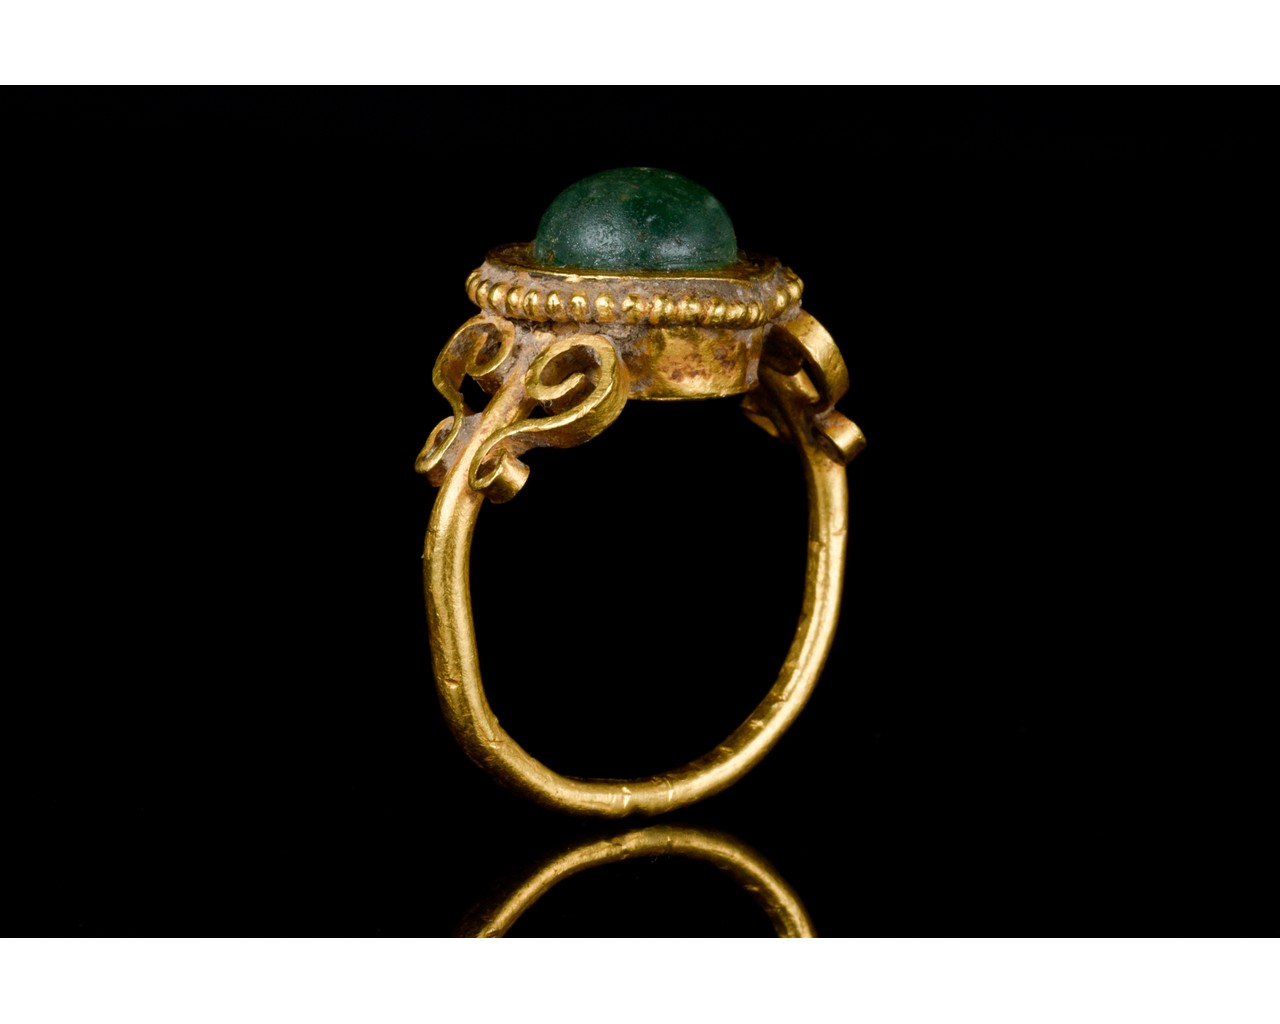 LATE ROMAN GOLD AND GLASS RING - EX CHRISTIE'S - FULL ANALYSIS - Image 6 of 8